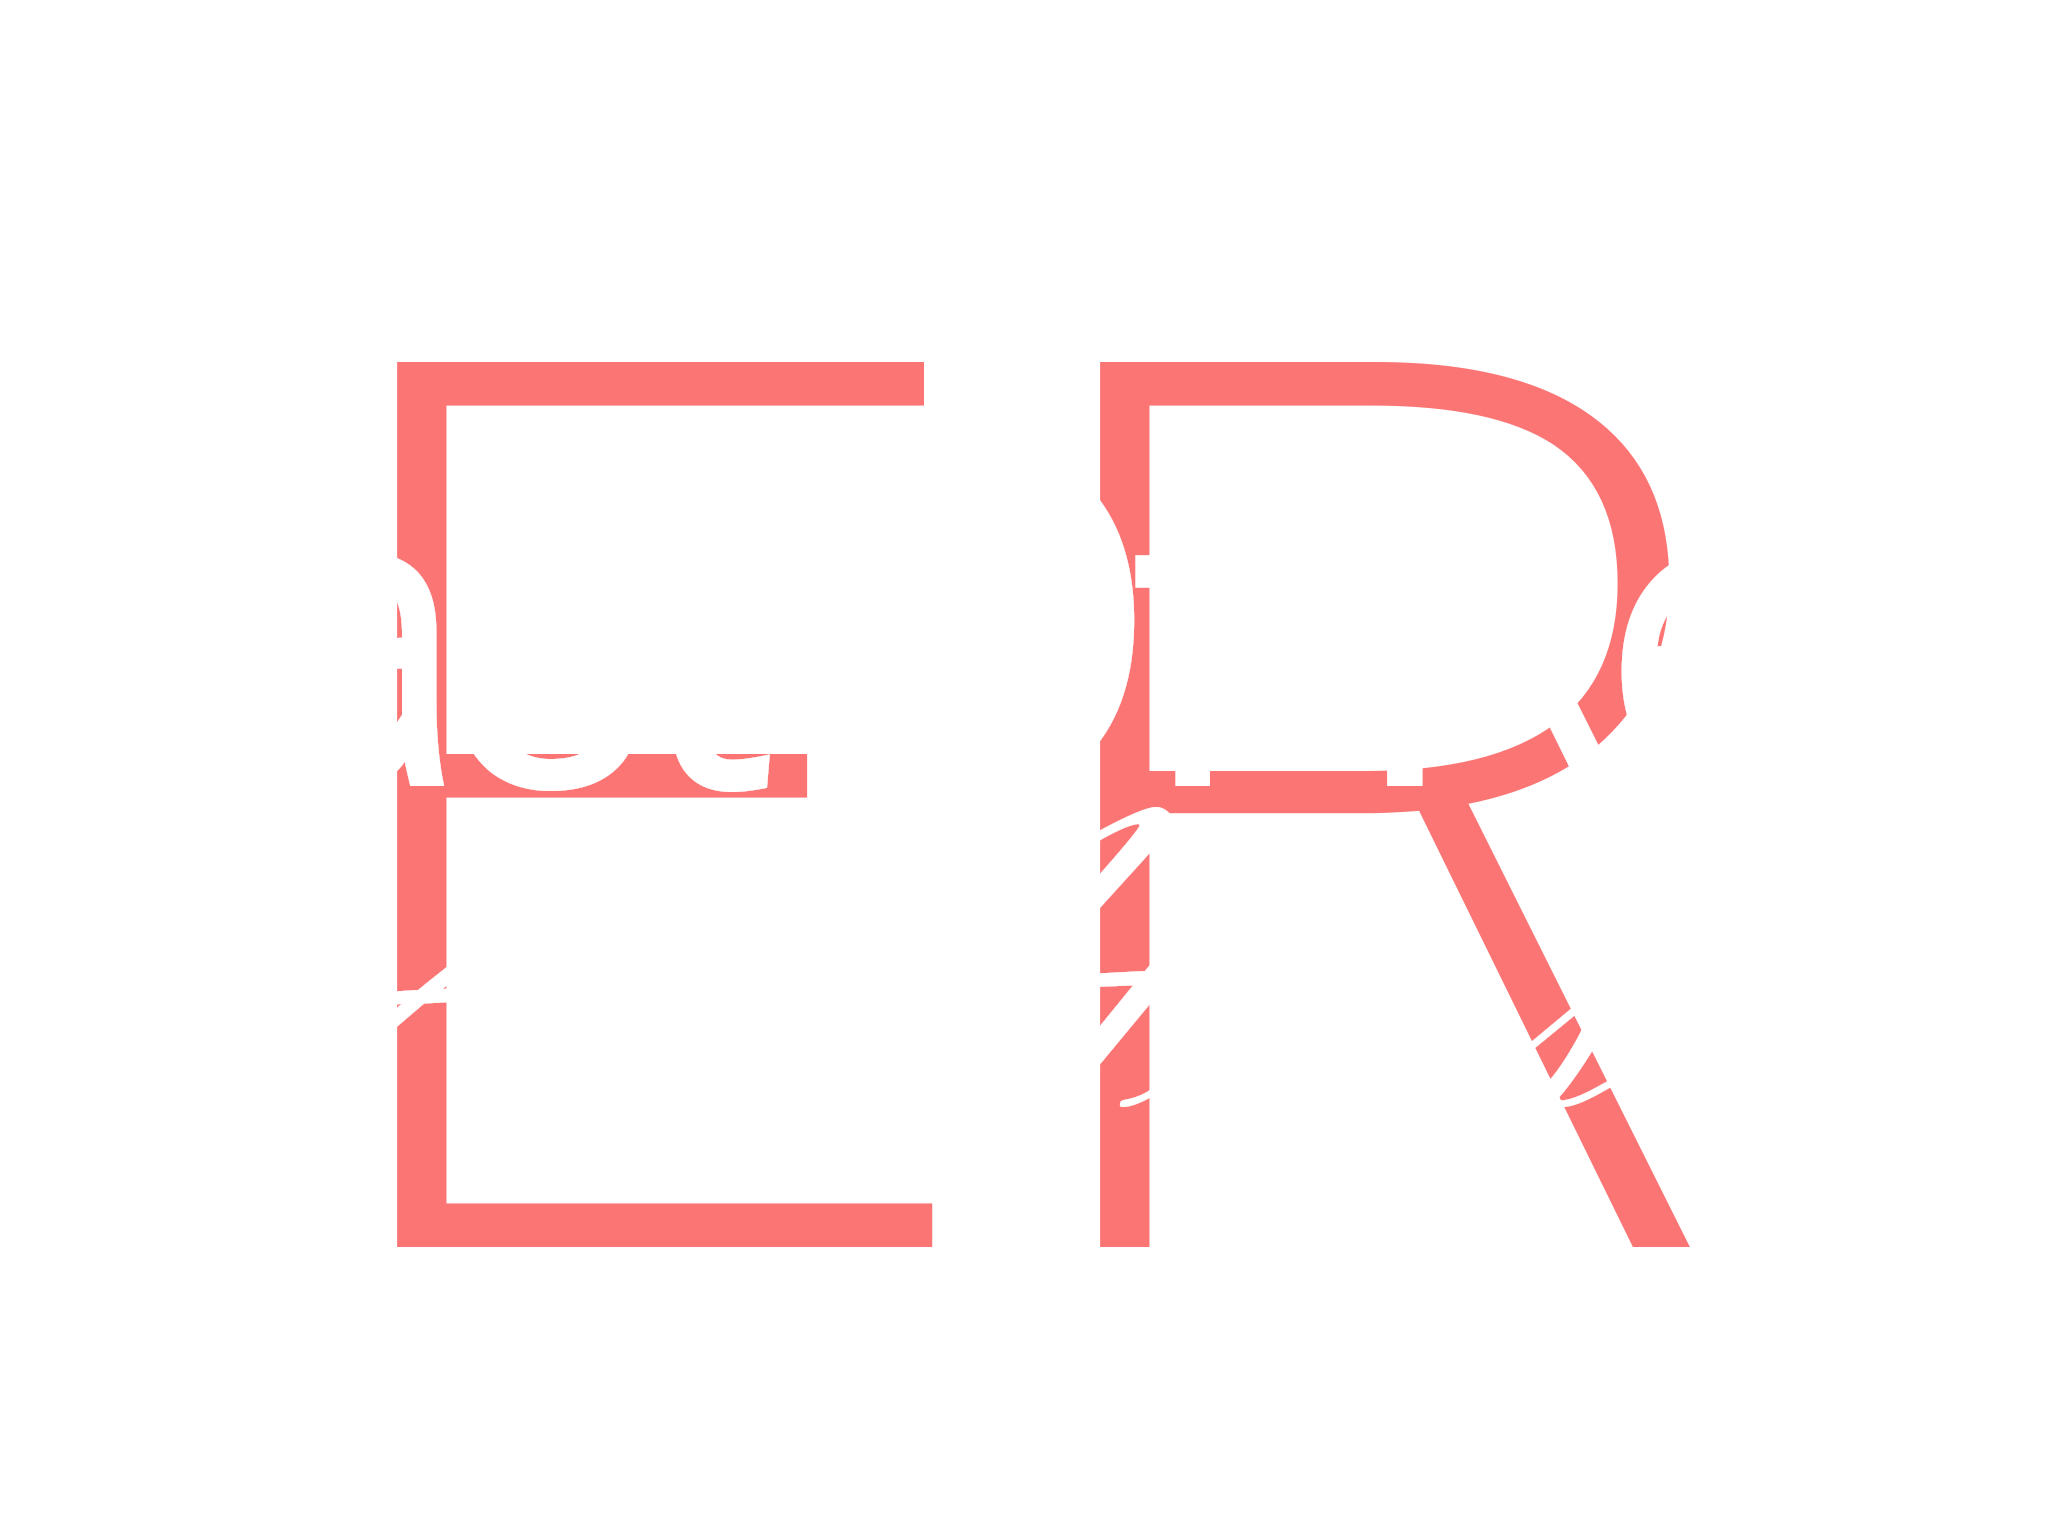 East of Red ArtHouse